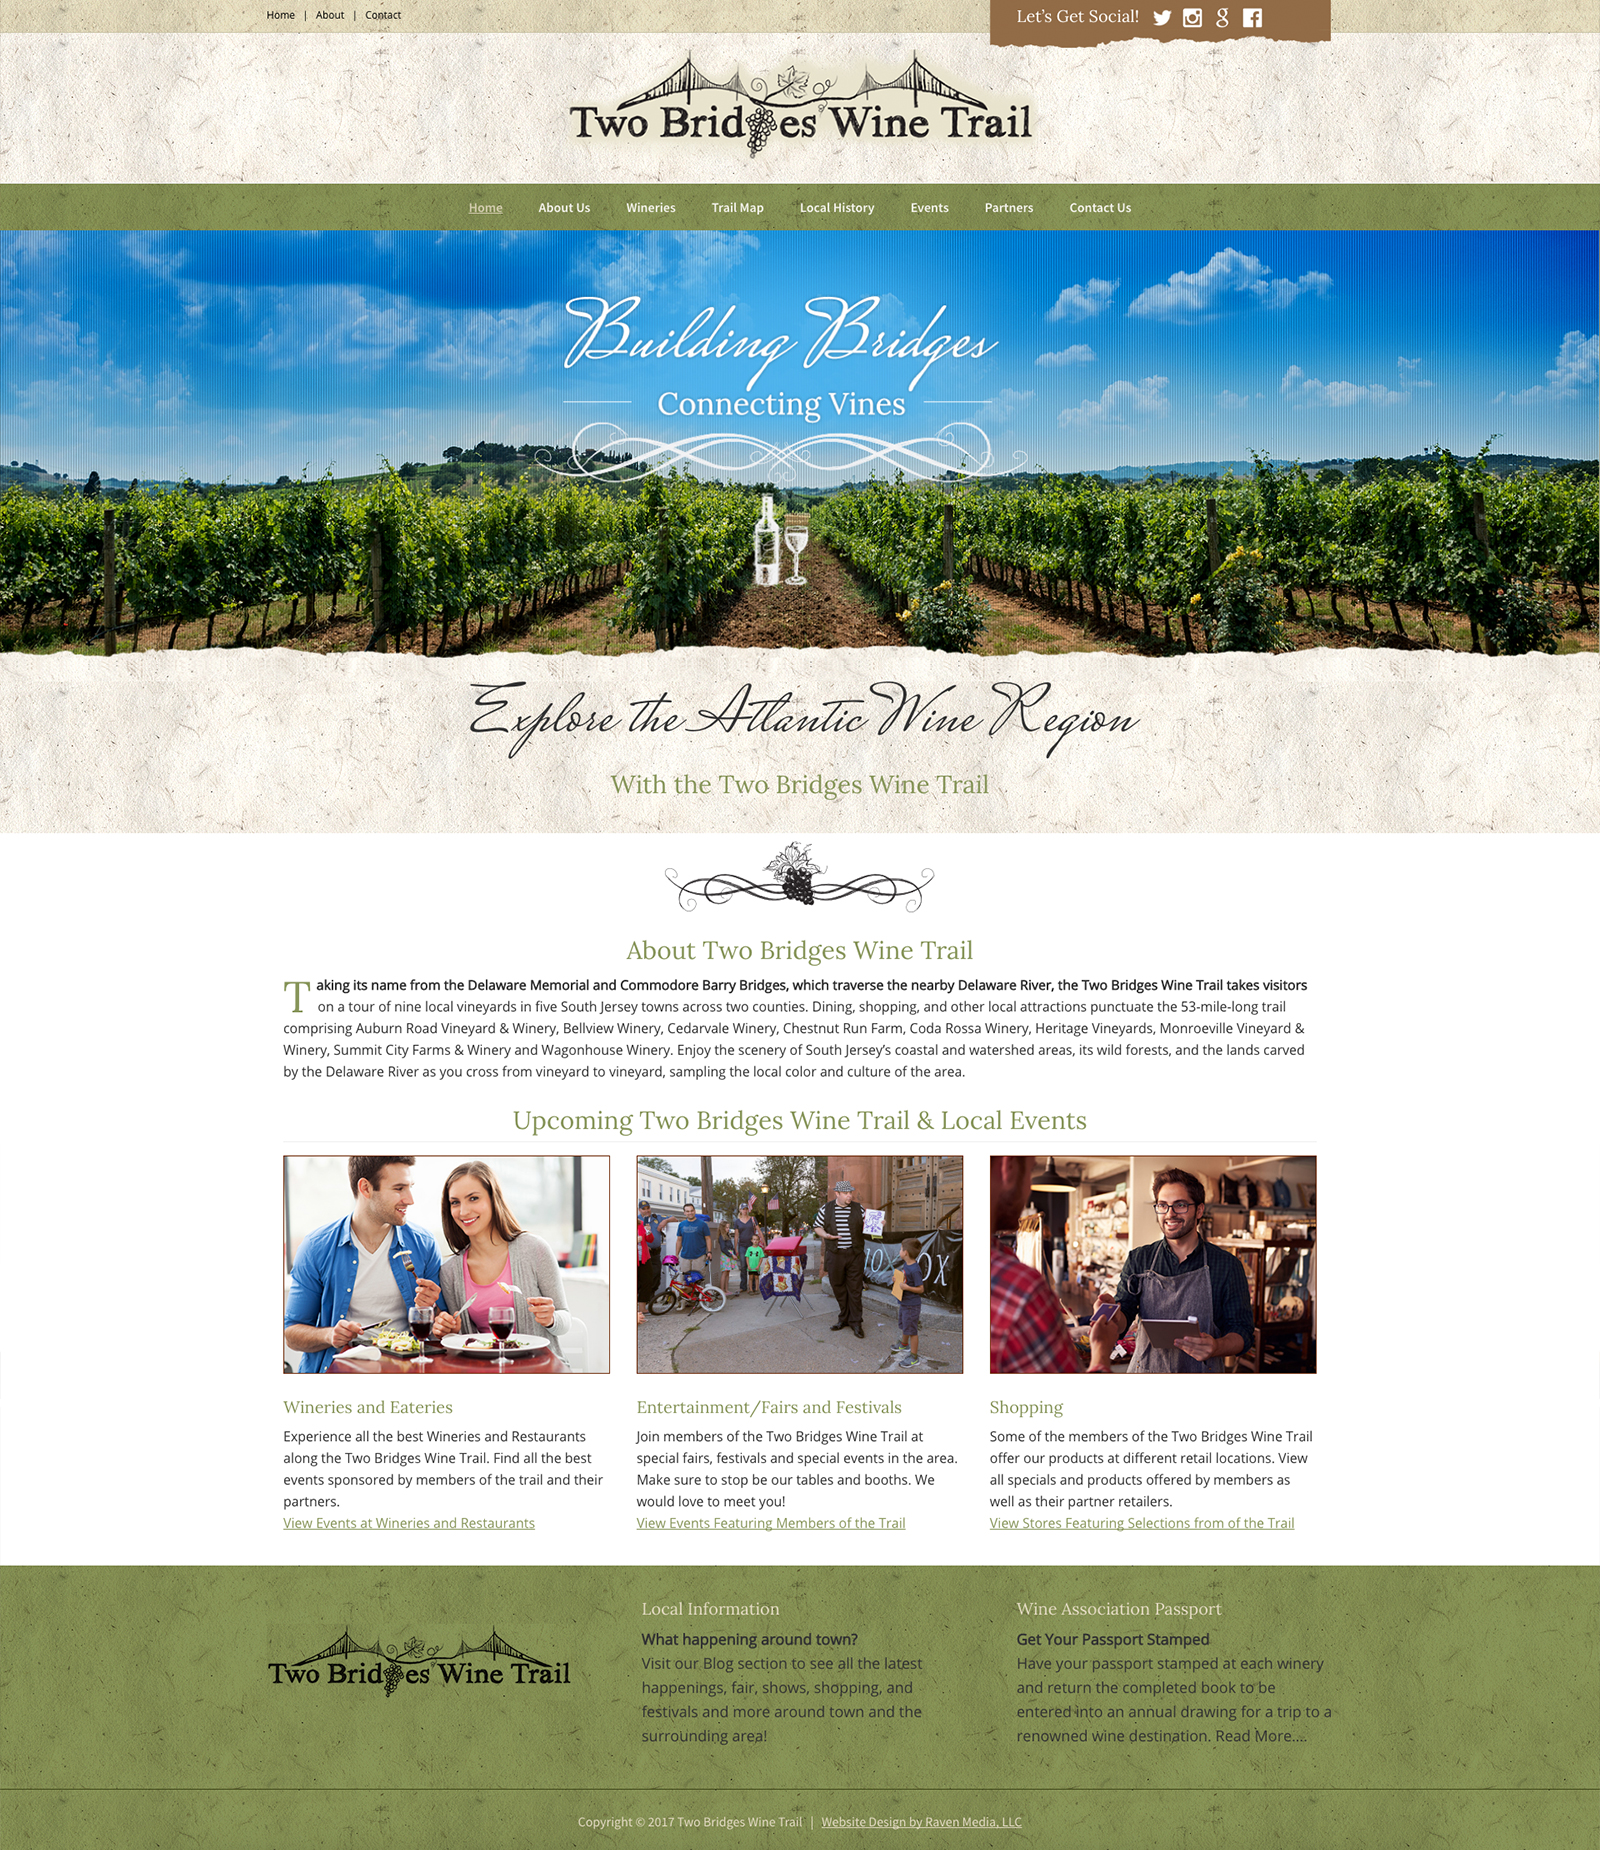 Two Bridges Wine Trail Website Design Project